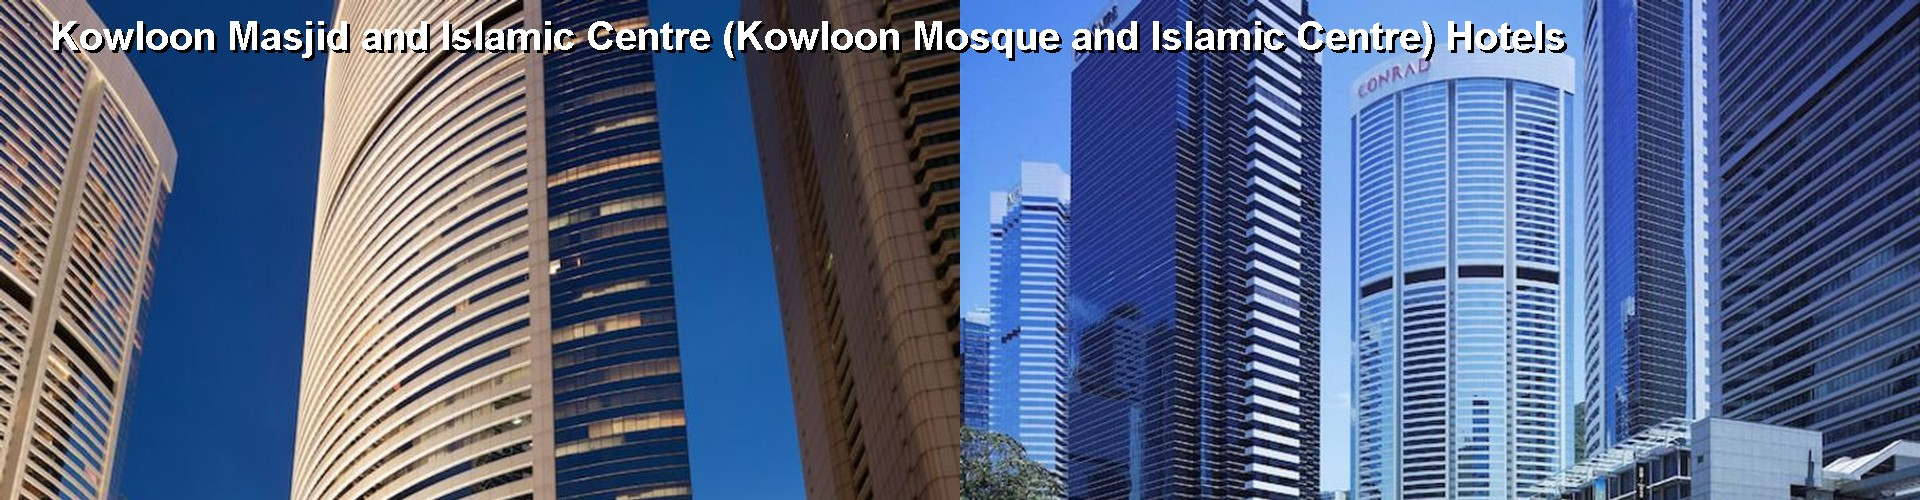 5 Best Hotels near Kowloon Masjid and Islamic Centre (Kowloon Mosque and Islamic Centre)